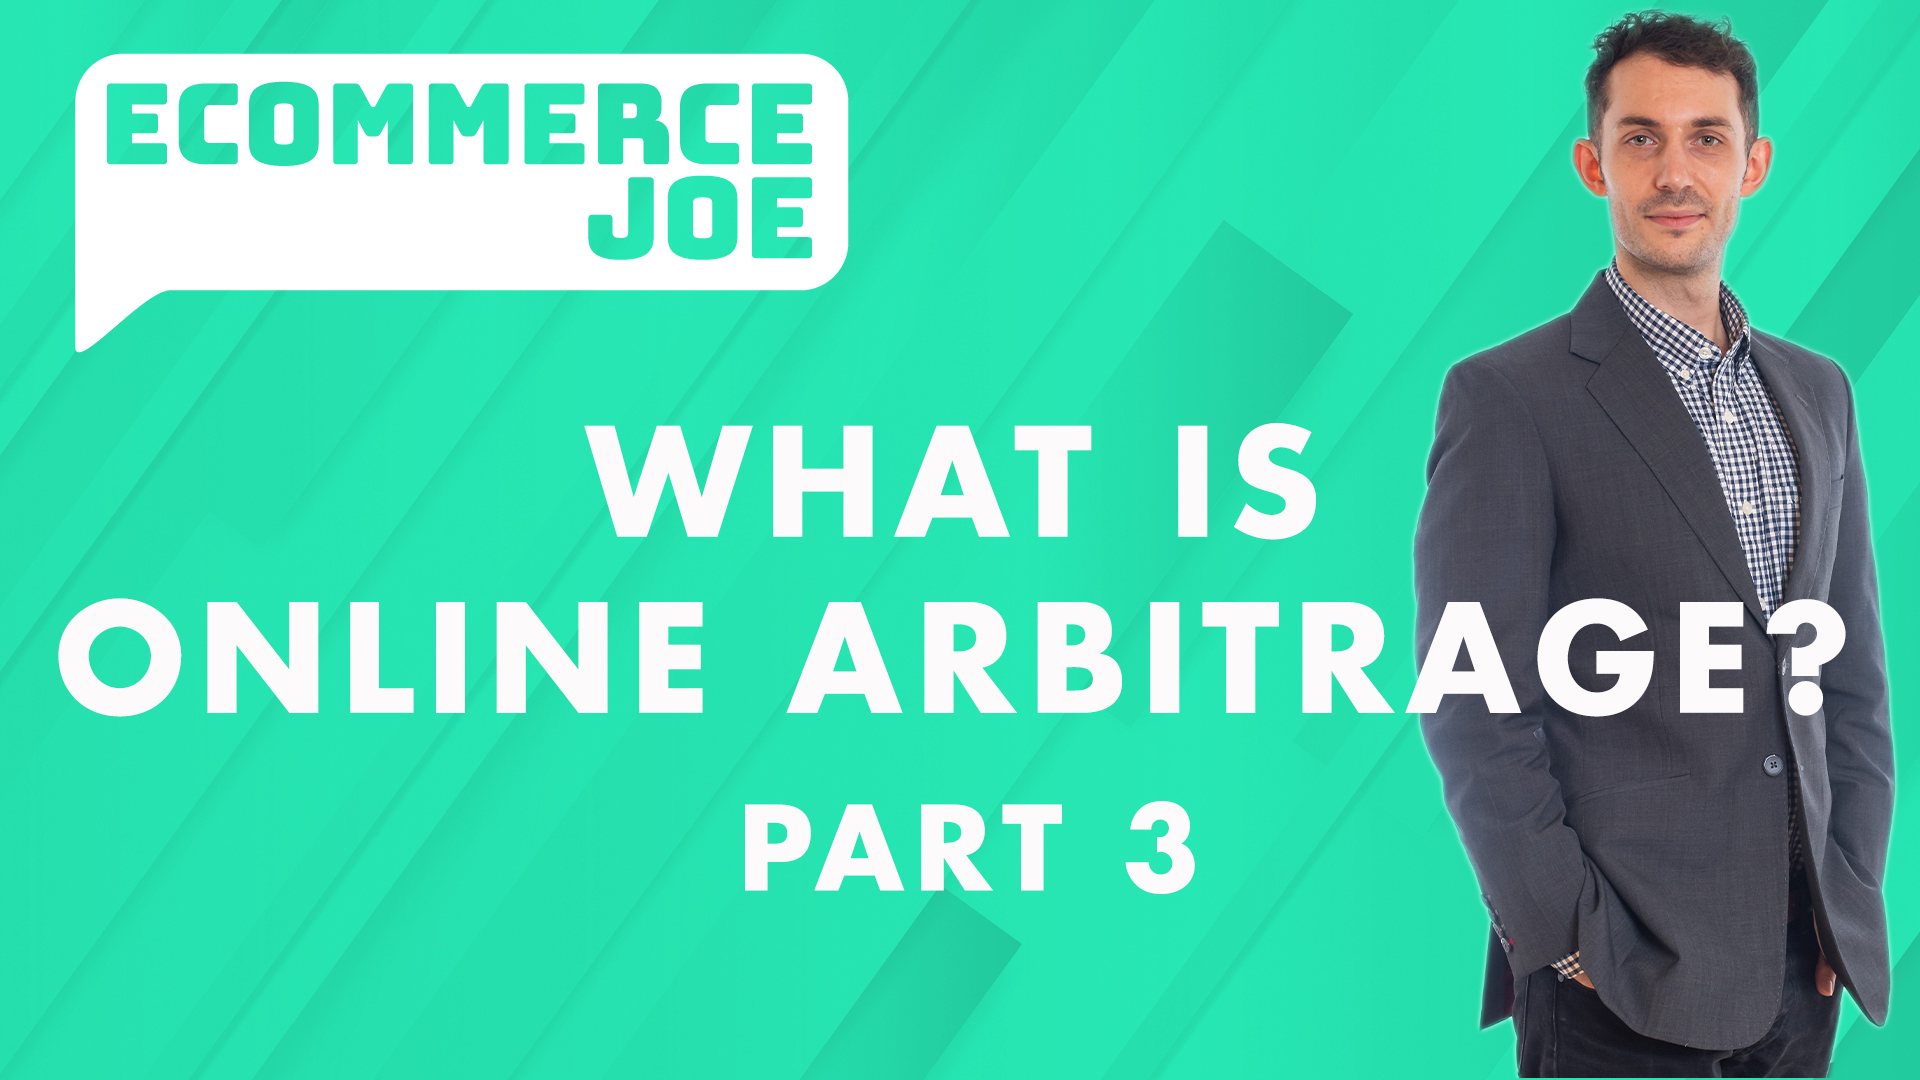 What is ONLINE ARBITRAGE? Part 3 | Learn the basics and get an overview of Online Arbitrage